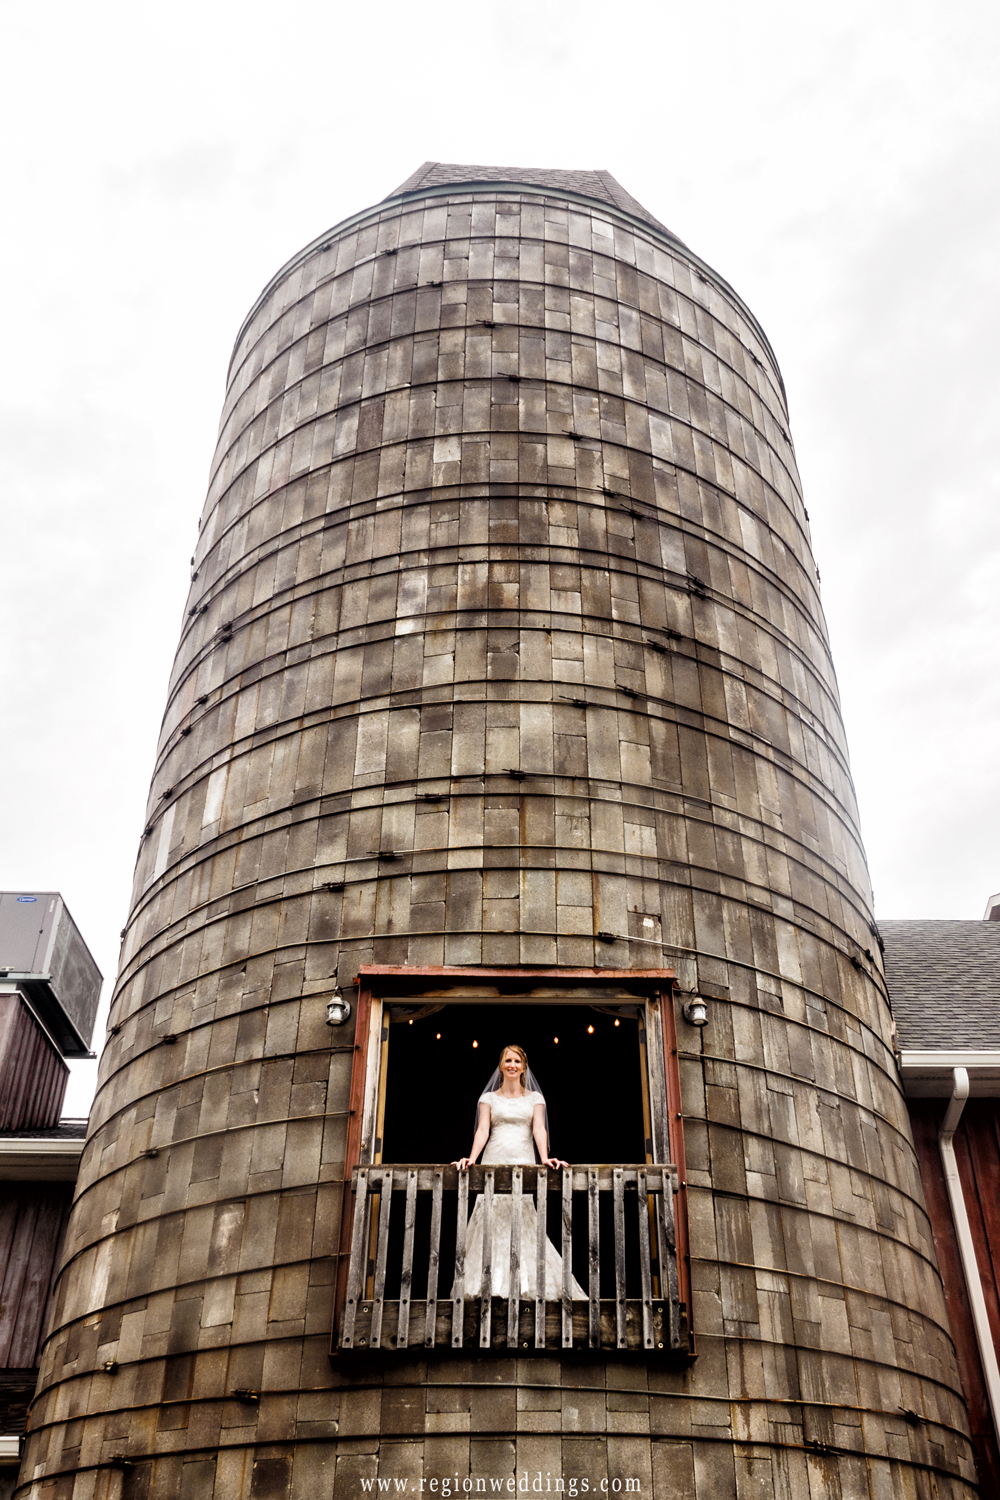 The bride stands on the balcony of the grain silo at County Line Orchard in Hobart, Indiana.